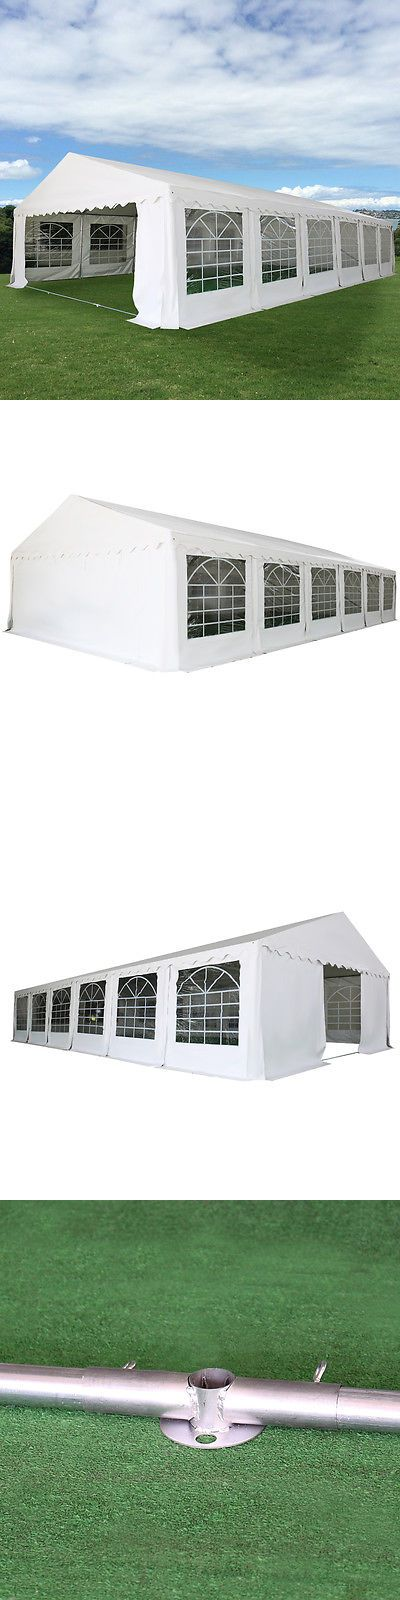 Marquees and Tents 180994: 20 X40 Wedding Tent Shelter Heavy Duty Outdoor Party Canopy Carport White -> BUY IT NOW ONLY: $999.99 on eBay!